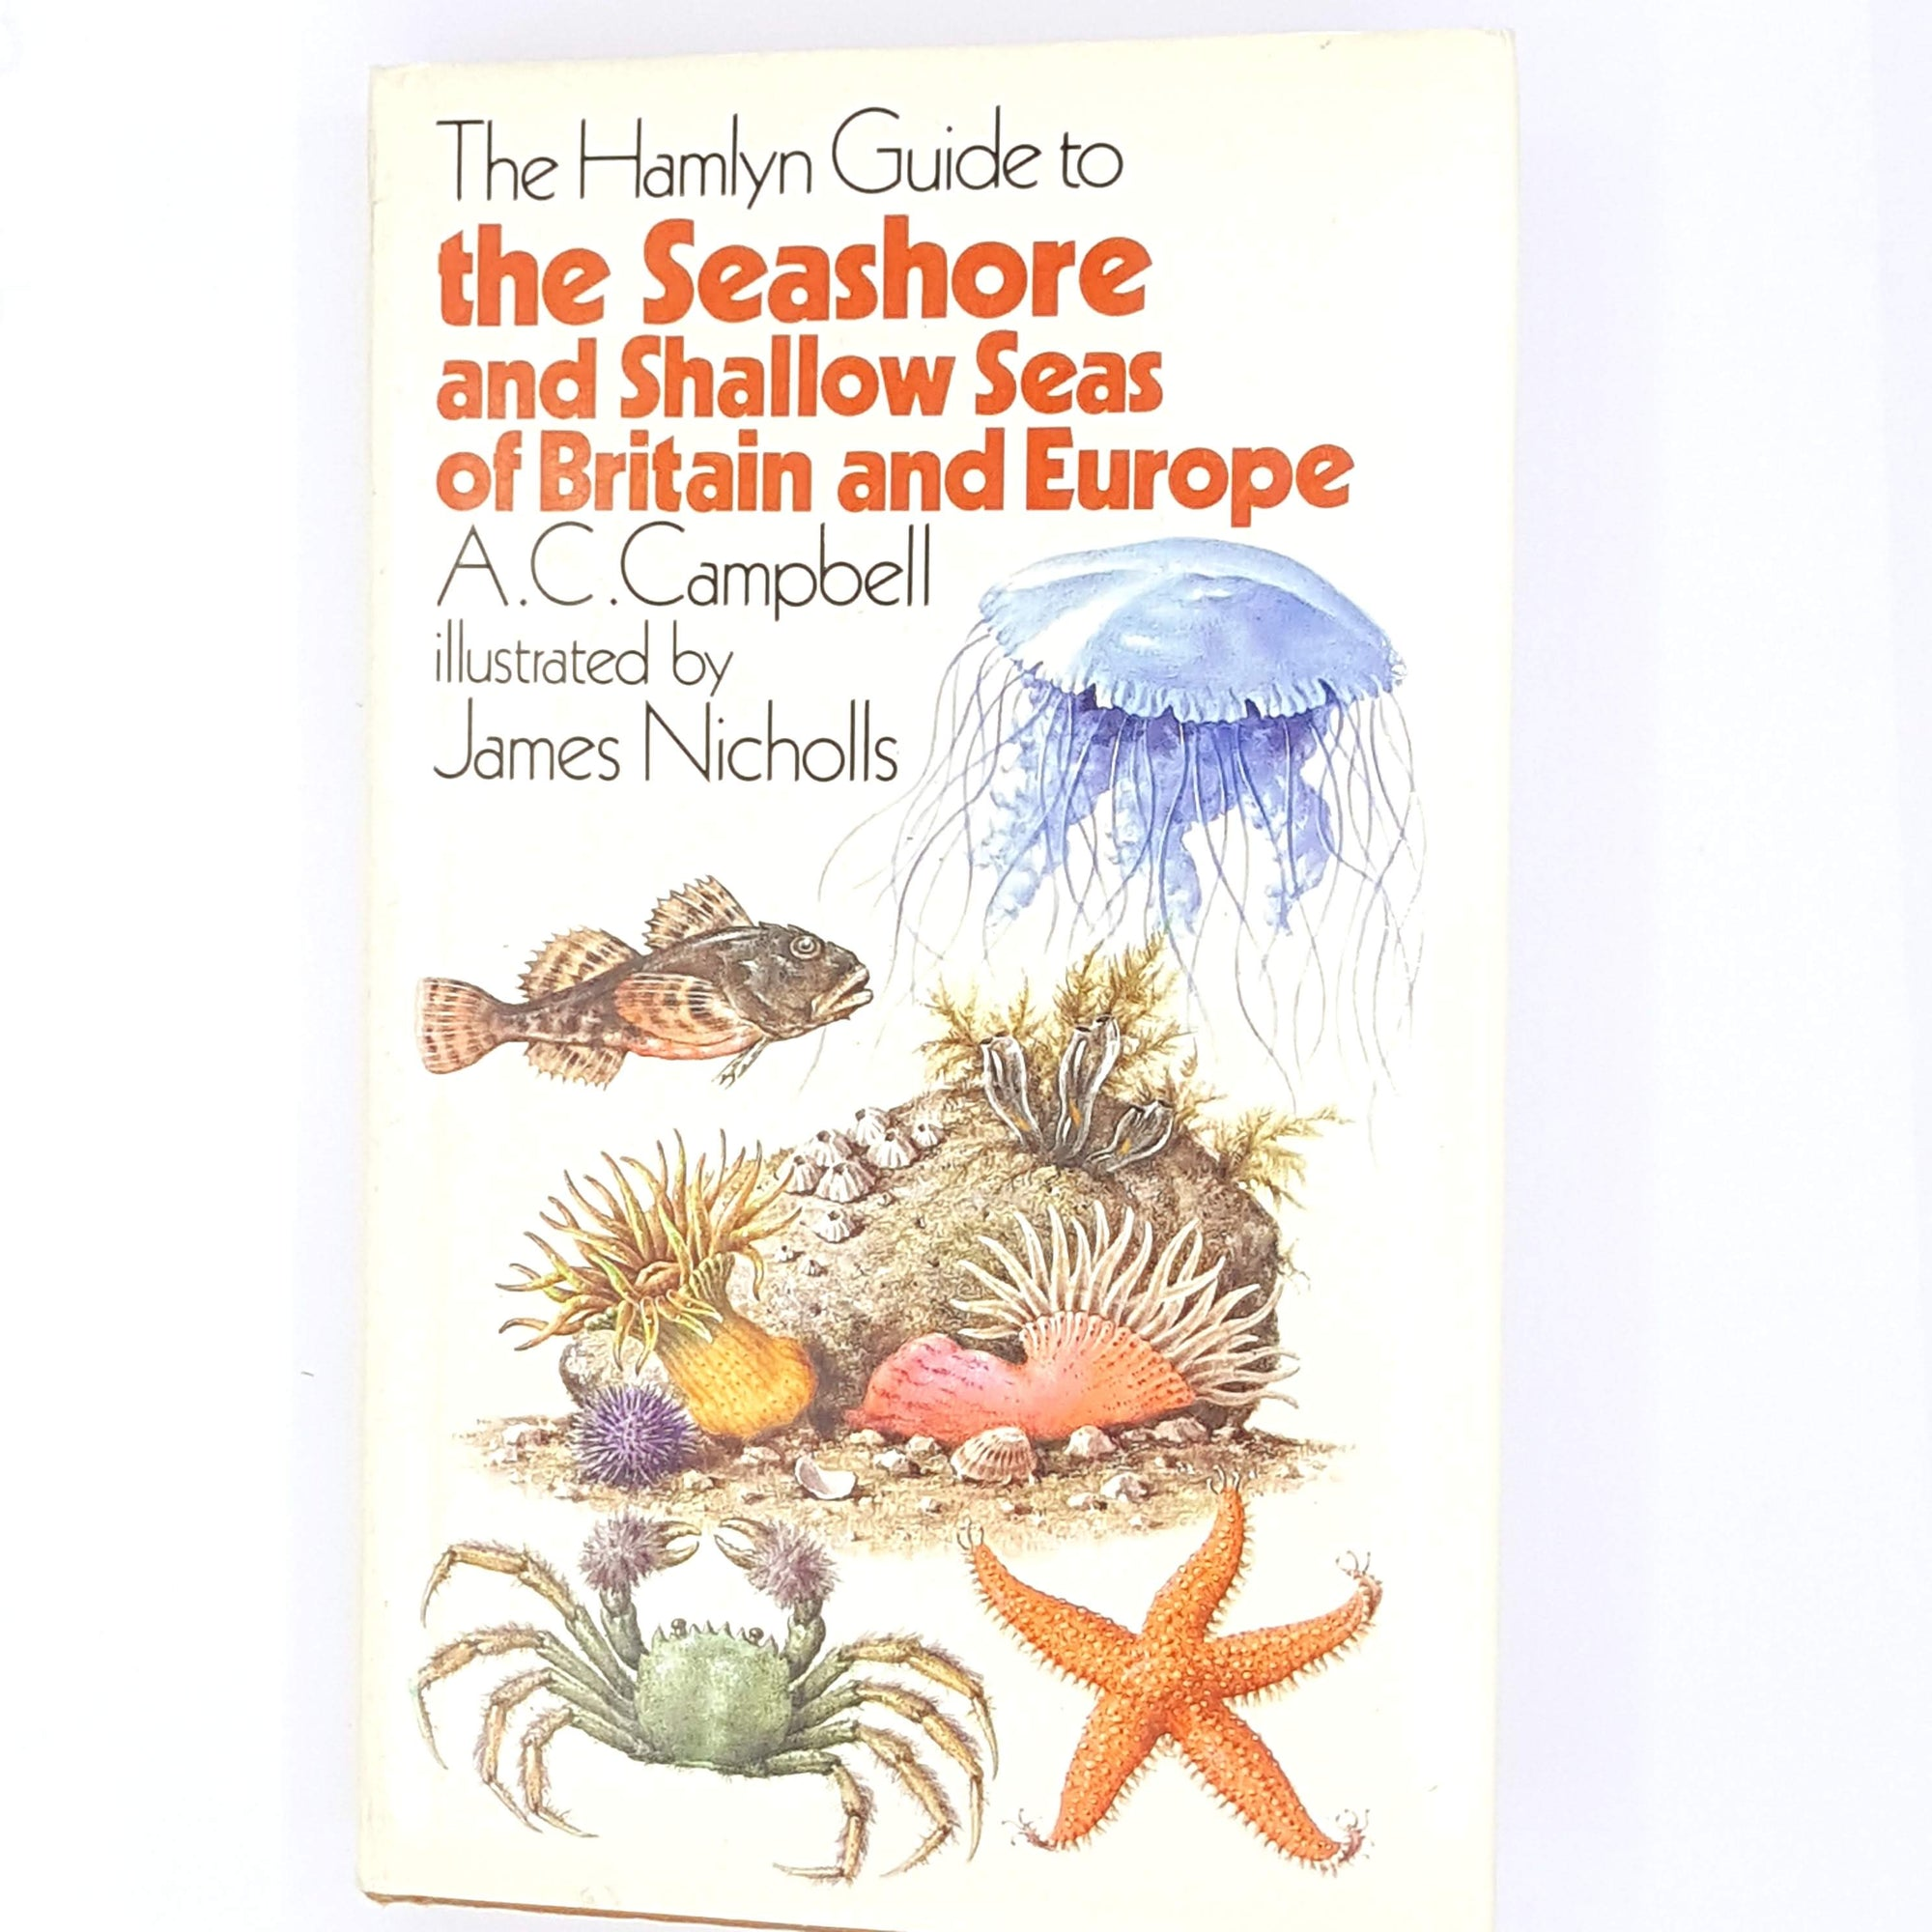 The Hamyln Guide to the seashore and shallow seas of Britain and Europe A.C.CAMPBELL 1976